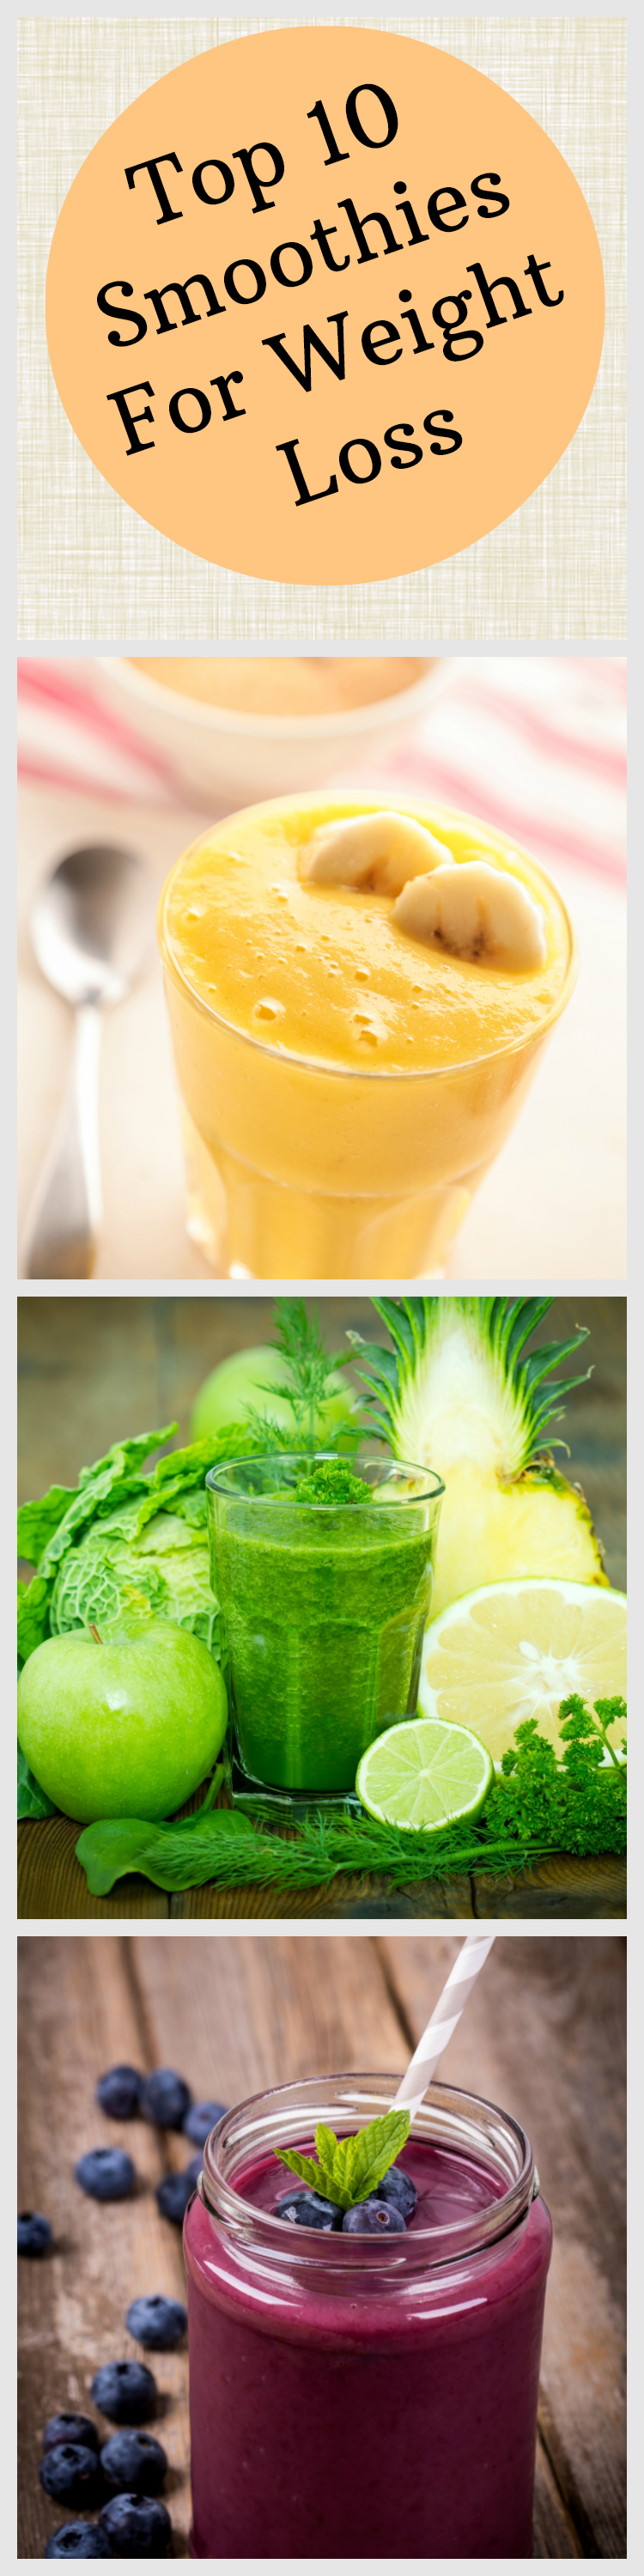 10 Awesome Smoothies For Weight Loss All Nutribullet Recipes